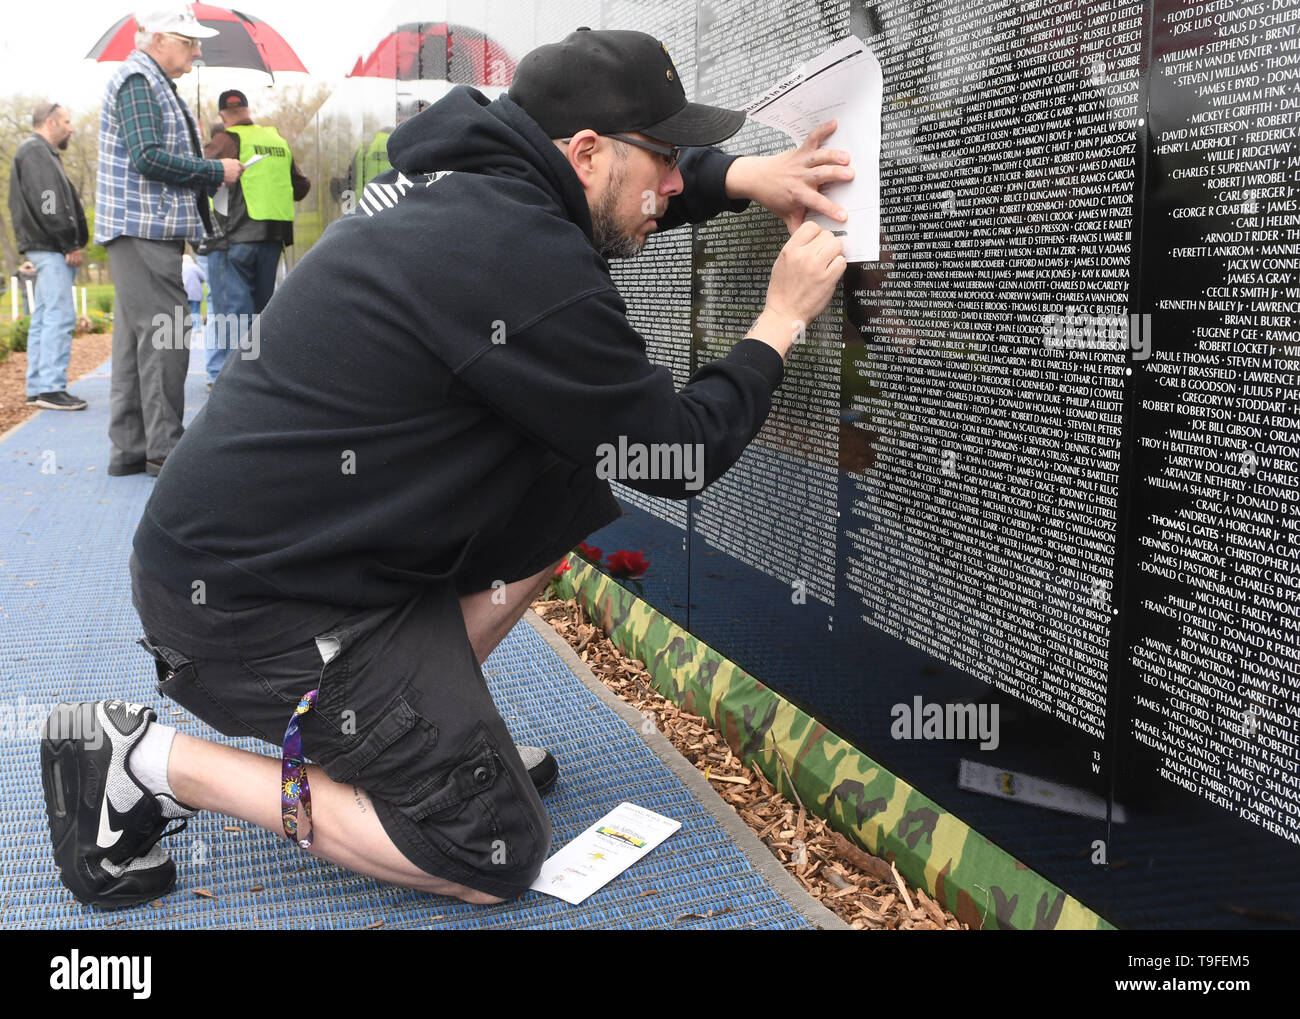 May 18, 2019 - Racine, Wisconsin, USA - Christian Woodard is emotional as he makes an etching of the name of Jerald Dale West and then removes his cap and bows his head at the Moving Wall, a half-size replica of the Vietnam Veterans Memorial, in Racine, Wisconsin, Saturday May 18, 2019. West, his half-brother's uncles, was killed in Vietnam January 31, 1970. Woodard was plans to send the etching to his half-brother. Forty-seven soldiers from Racine were killed during the war. The Moving Wall has been touring the United States for more than 30 years. (Credit Image: © Mark Hertzberg/ZUMA Wire) - Stock Image